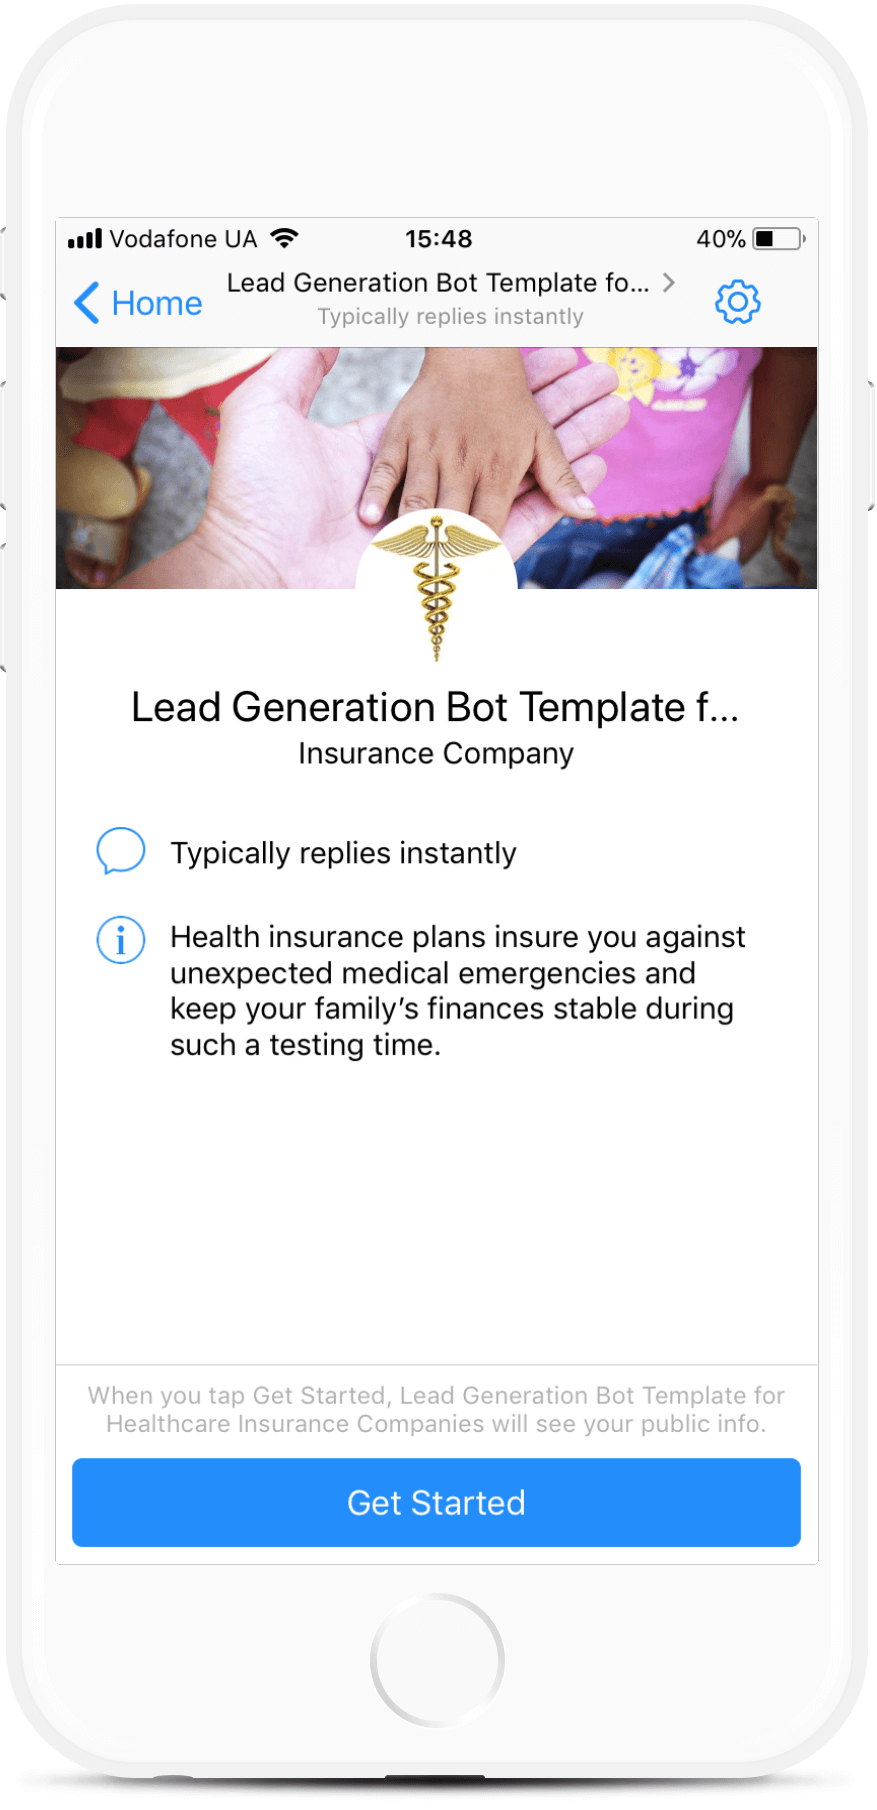 Lead Generation Messenger Bot for Insurance Companies